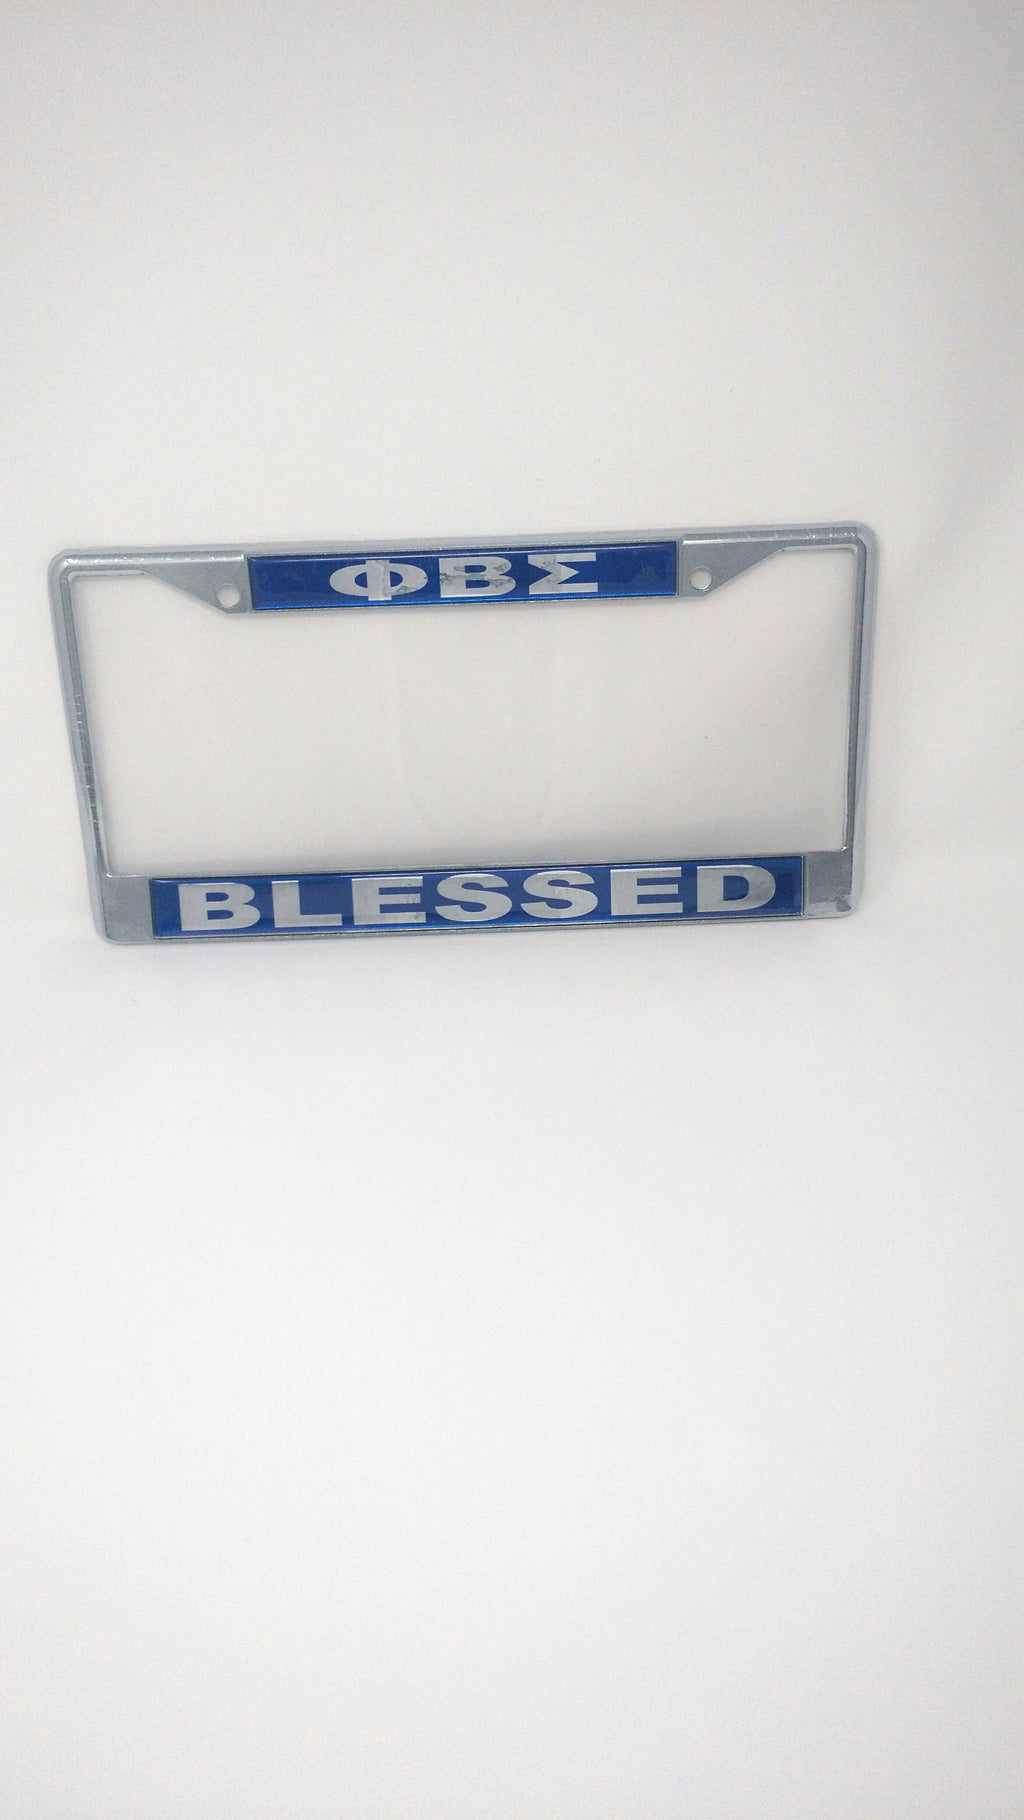 Phi Beta Sigma Blessed License Plate Frame